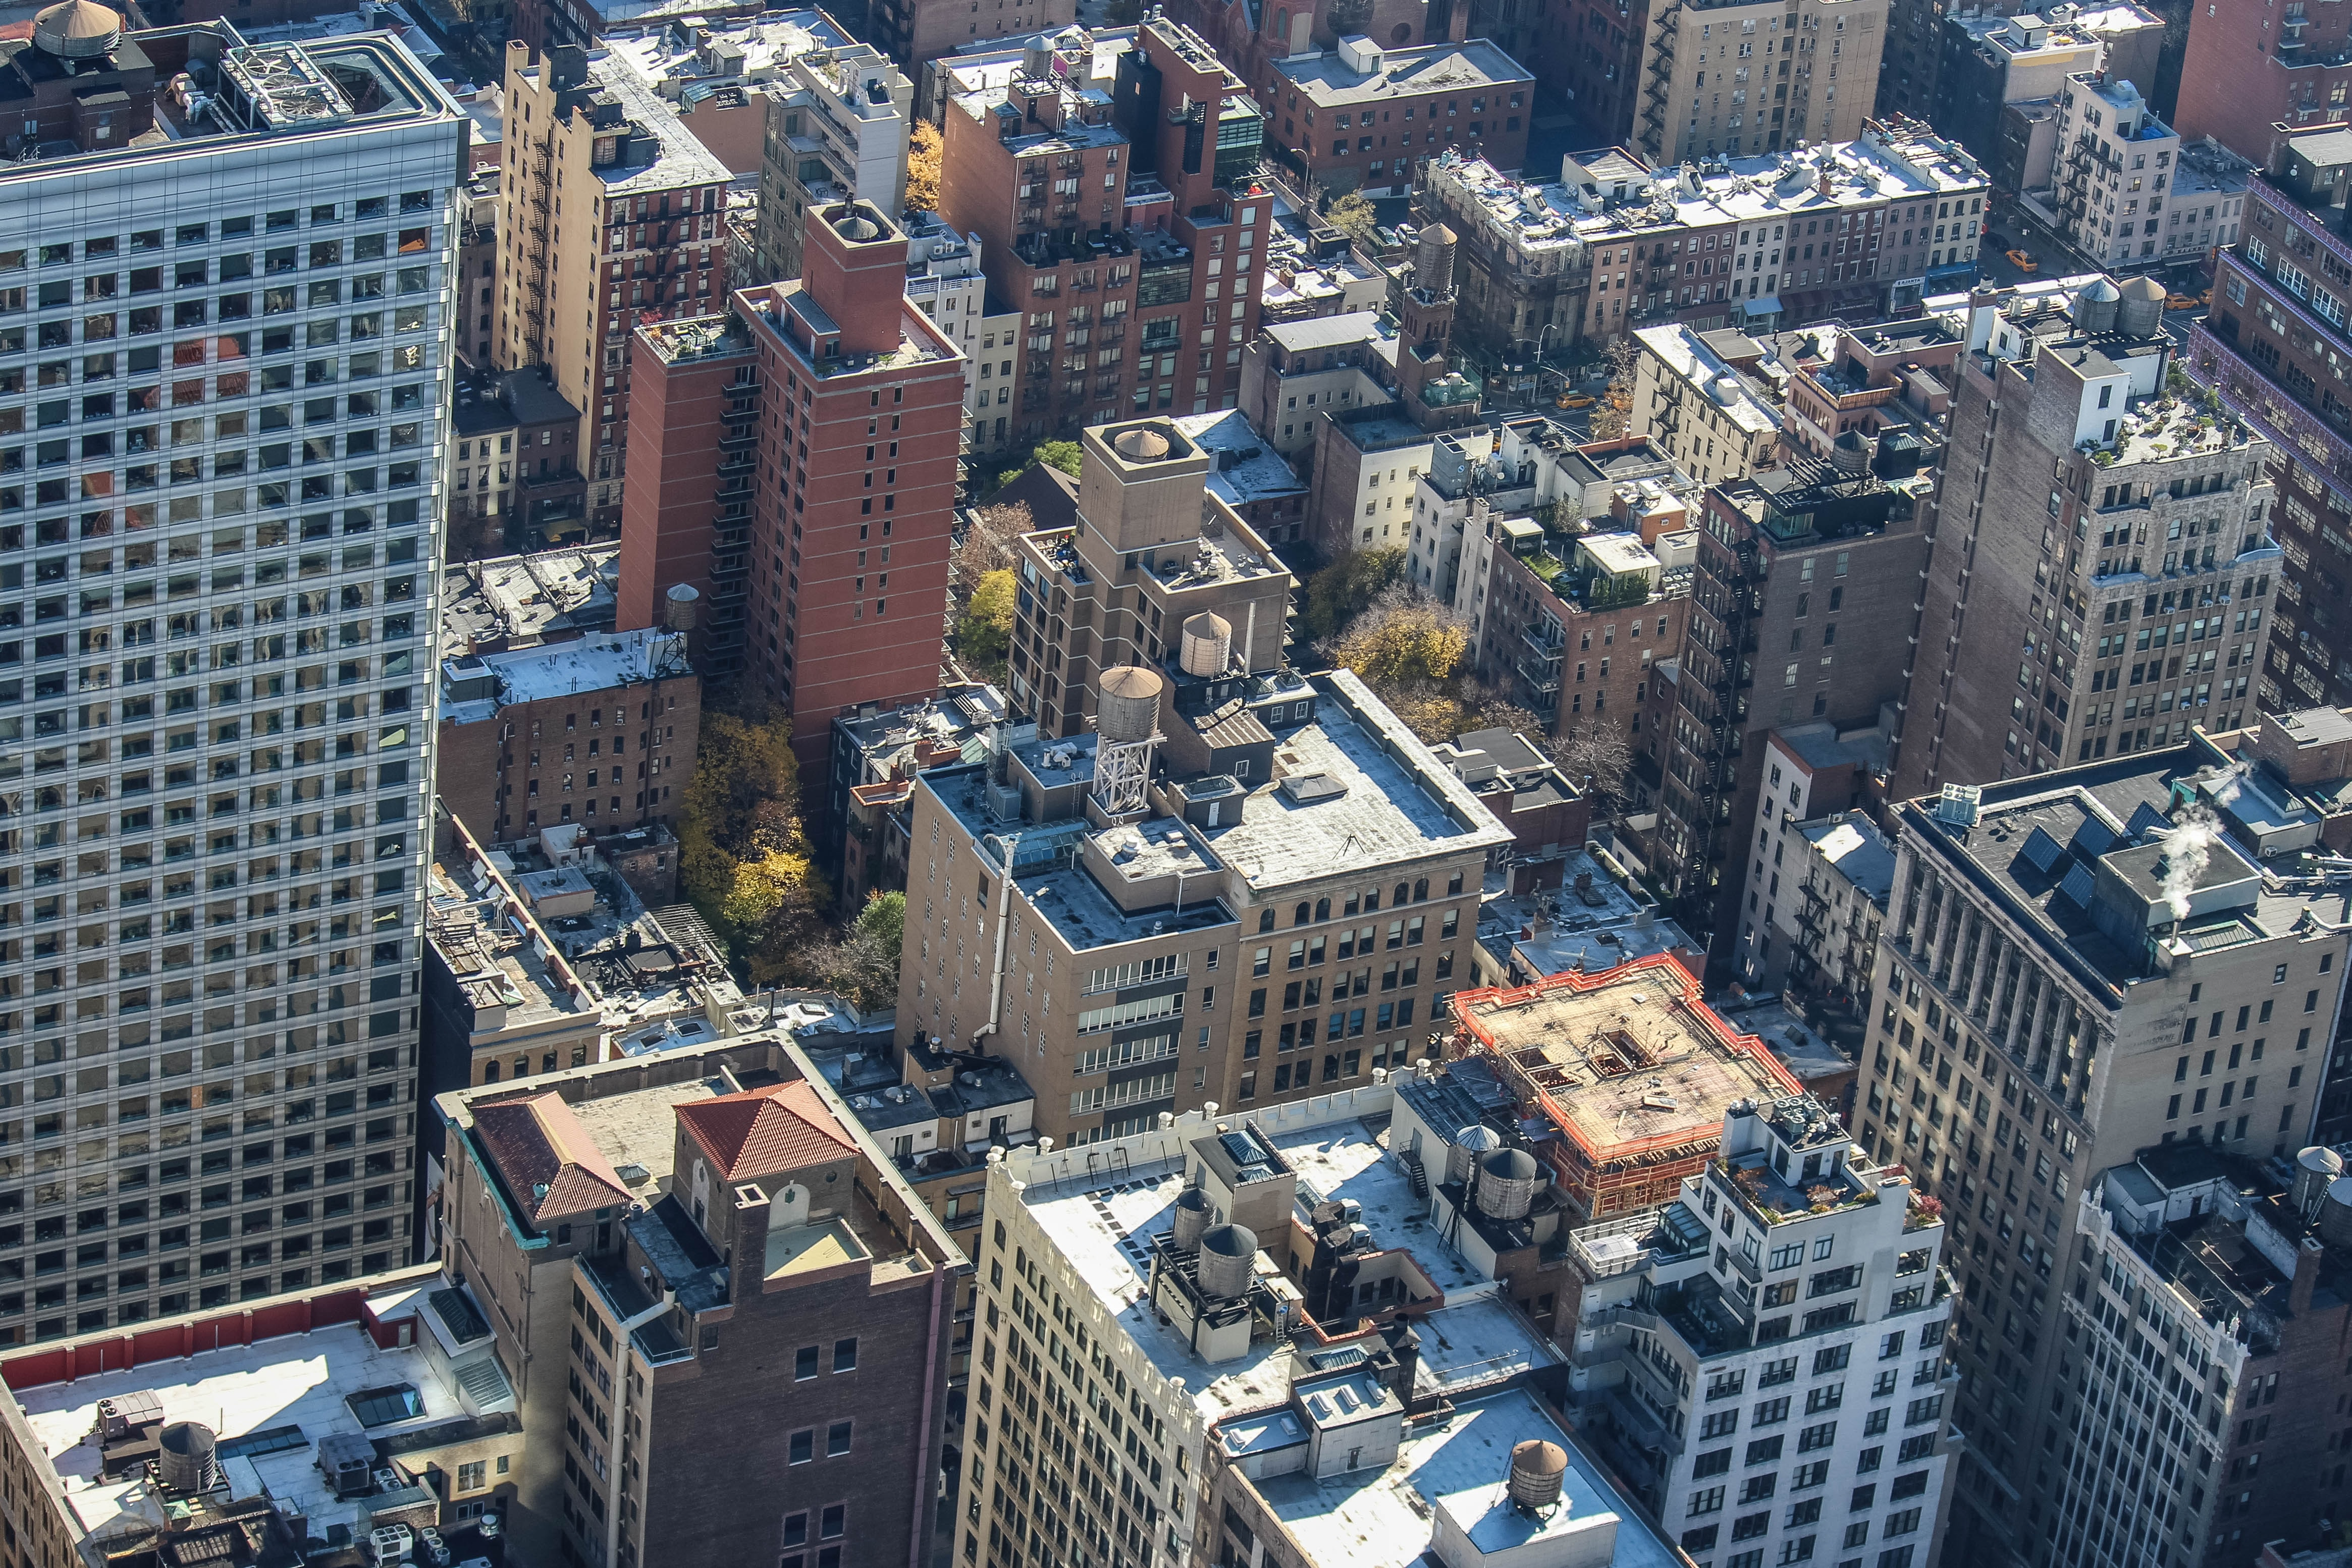 aerial view of high-rise buildings